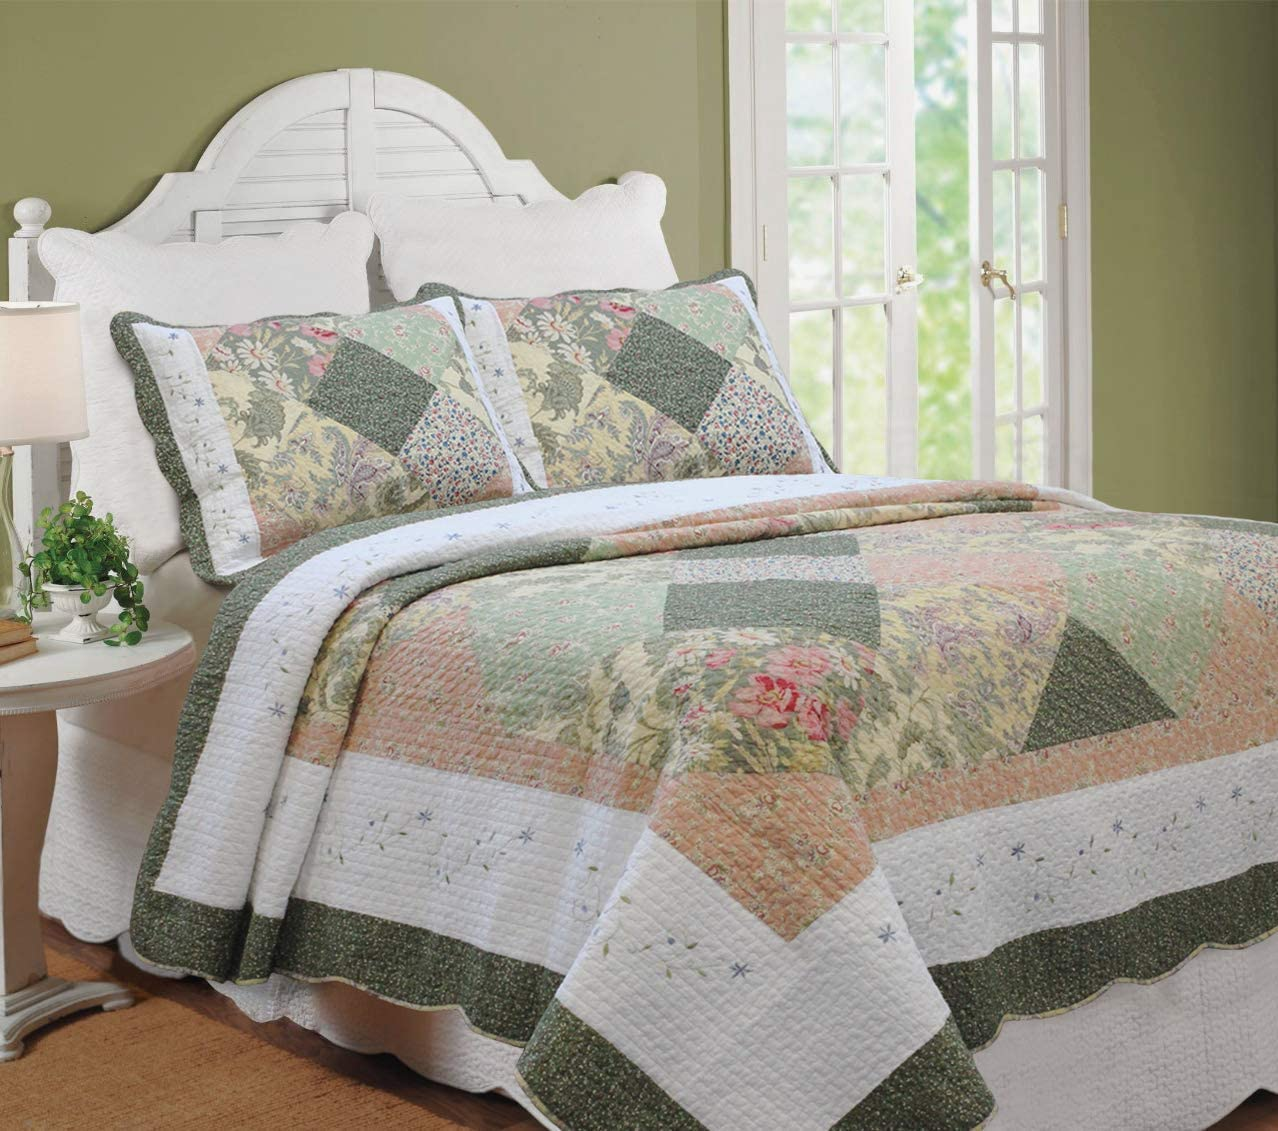 Cozy Line Home Fashions Floral Real Patchwork Olive Green Pink Scalloped Edge Country 100% Cotton Quilt Bedding Set, Reversible Coverlet Bedspread for Women (Williamsburg, King - 3 Piece)